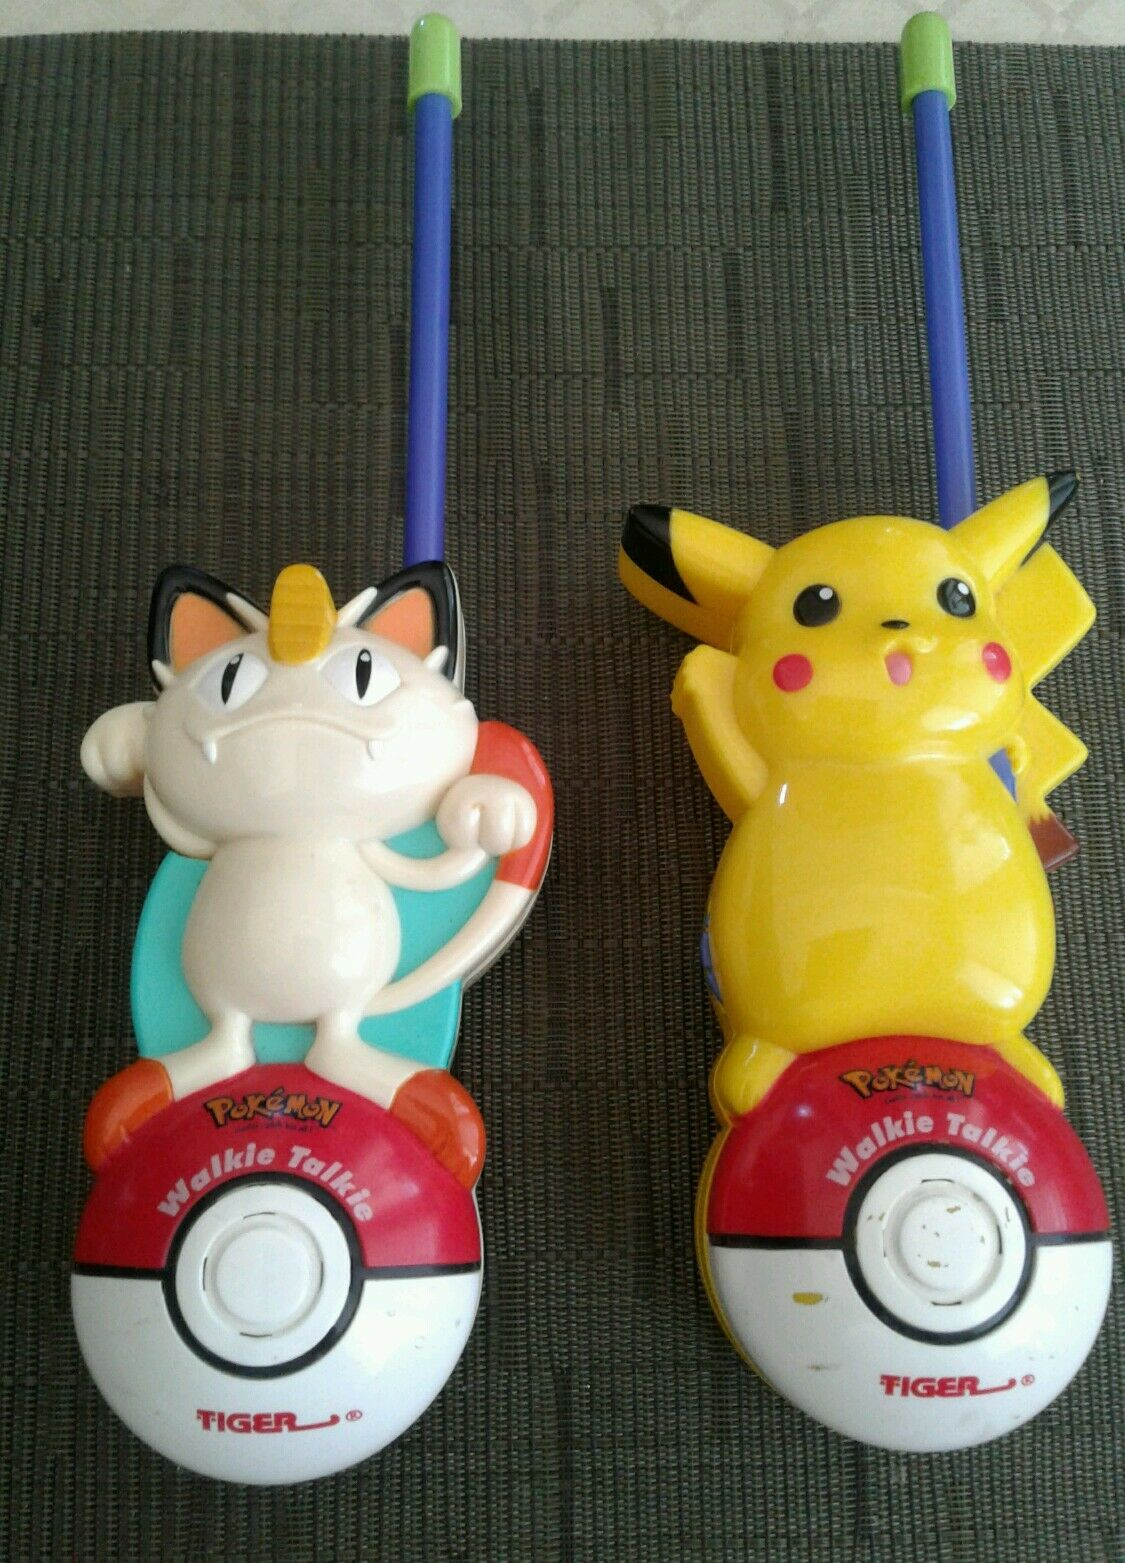 Pokémon Walkie Talkies (includes Pikachu and Meowth) by Tiger Electronics 1998